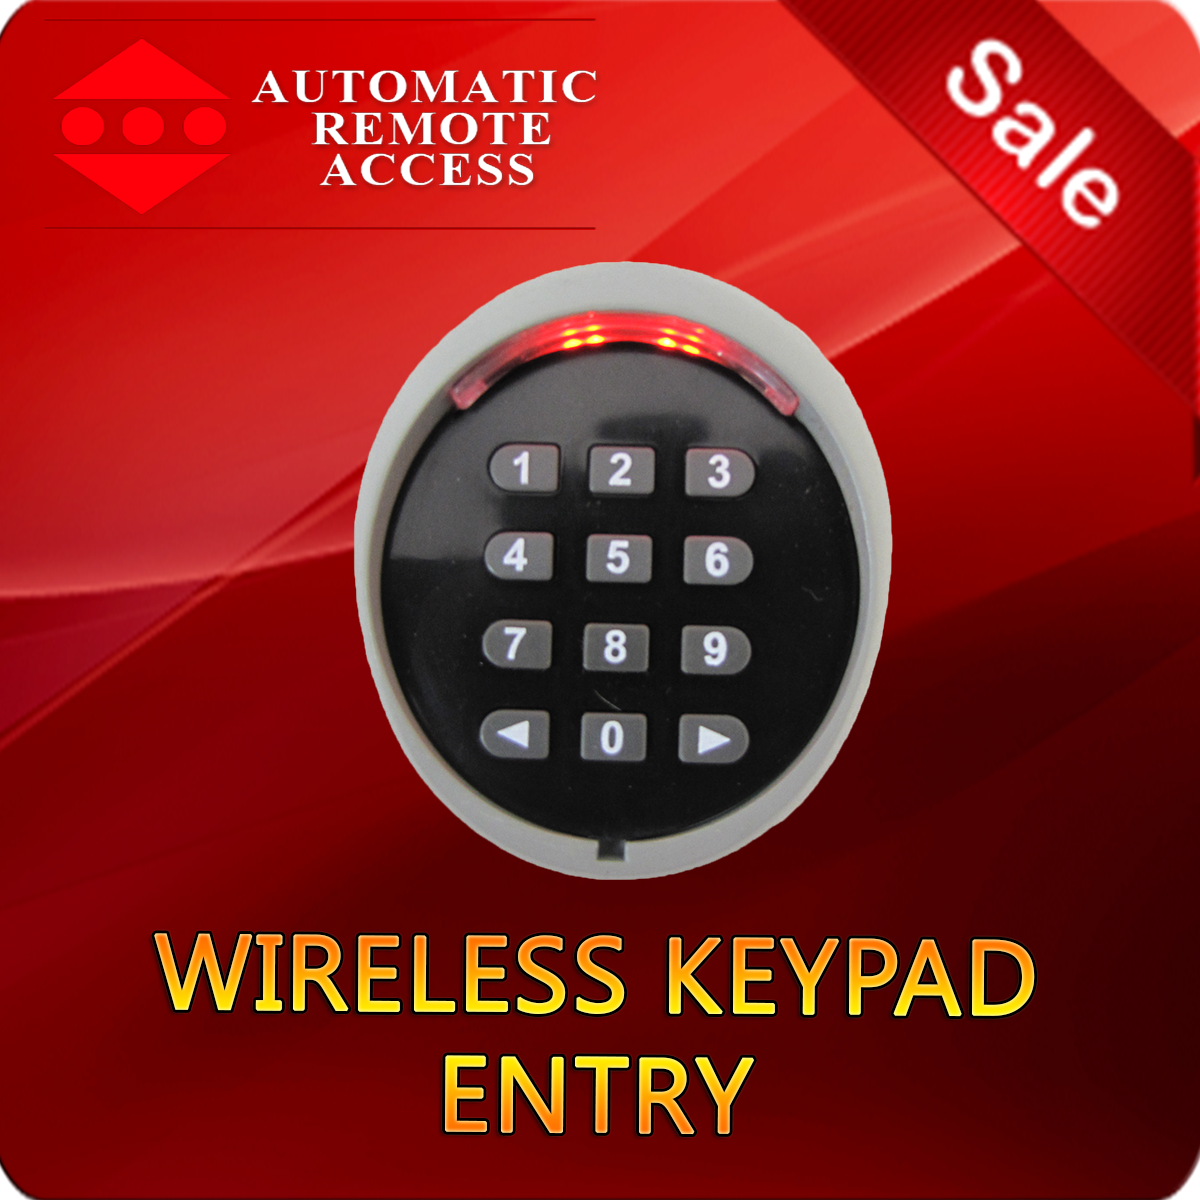 Wireless keypad entry